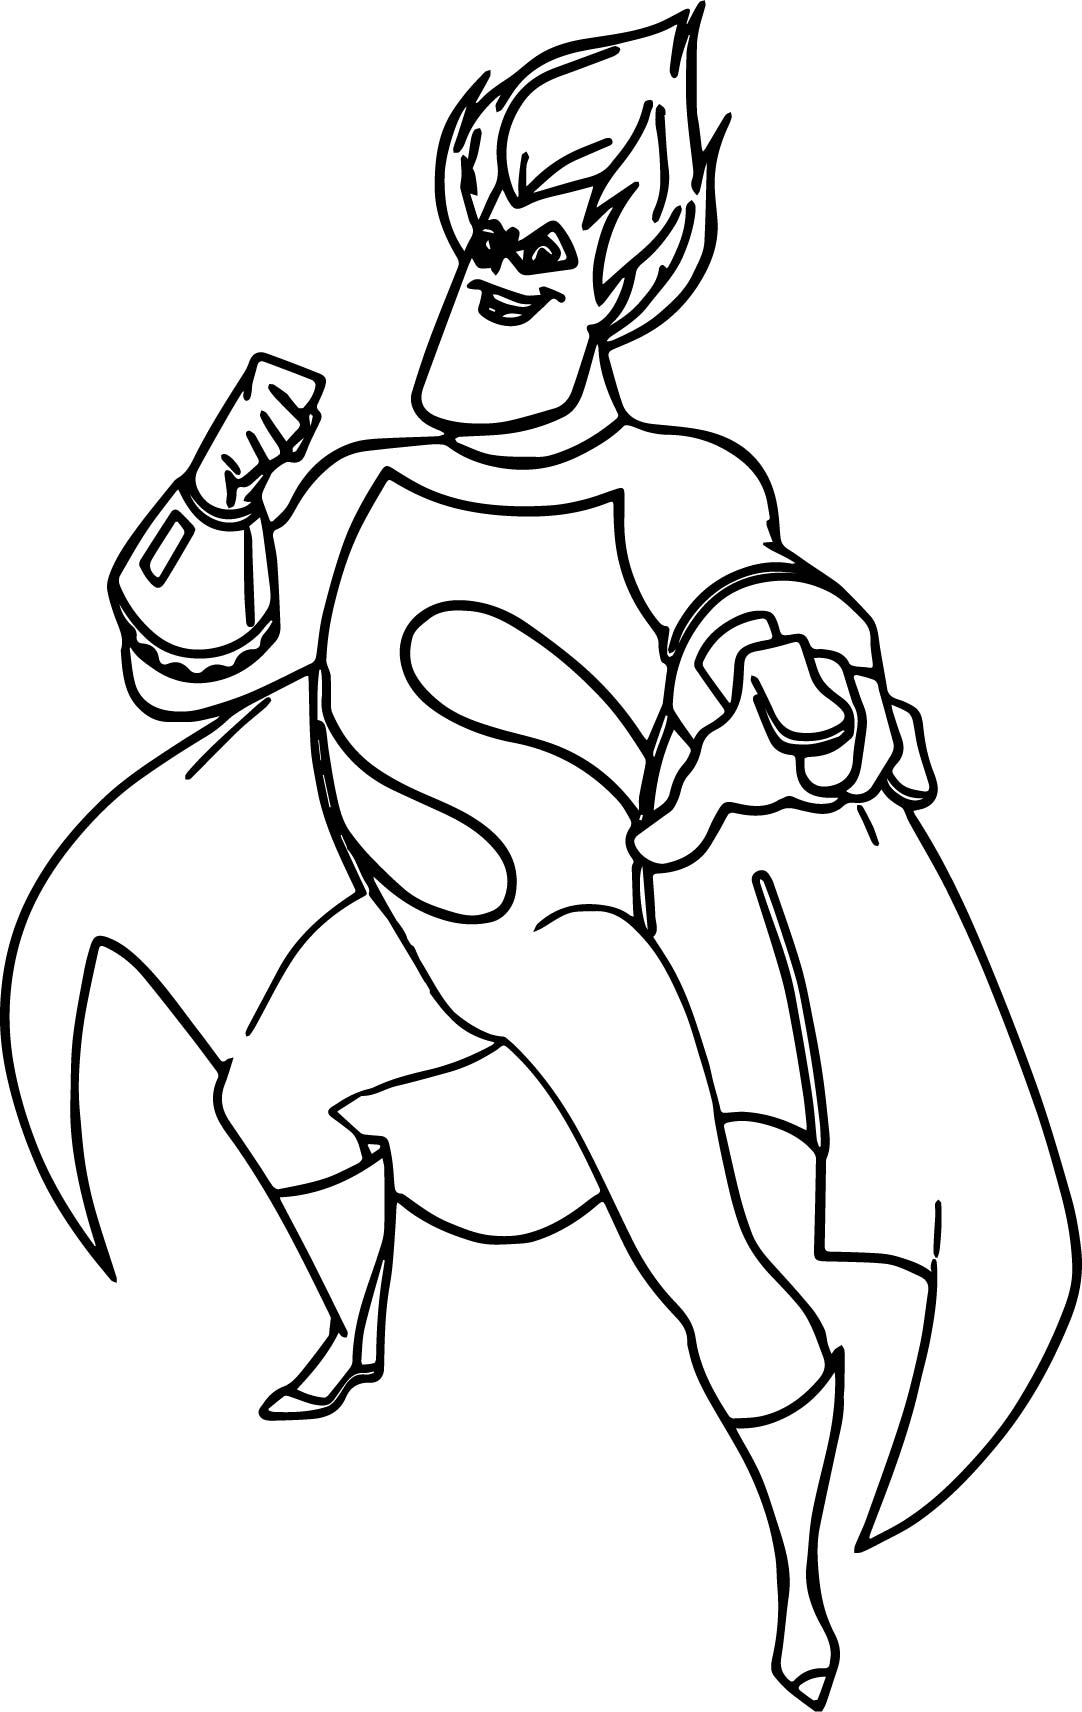 Syndrome Incredibles Coloring Pages